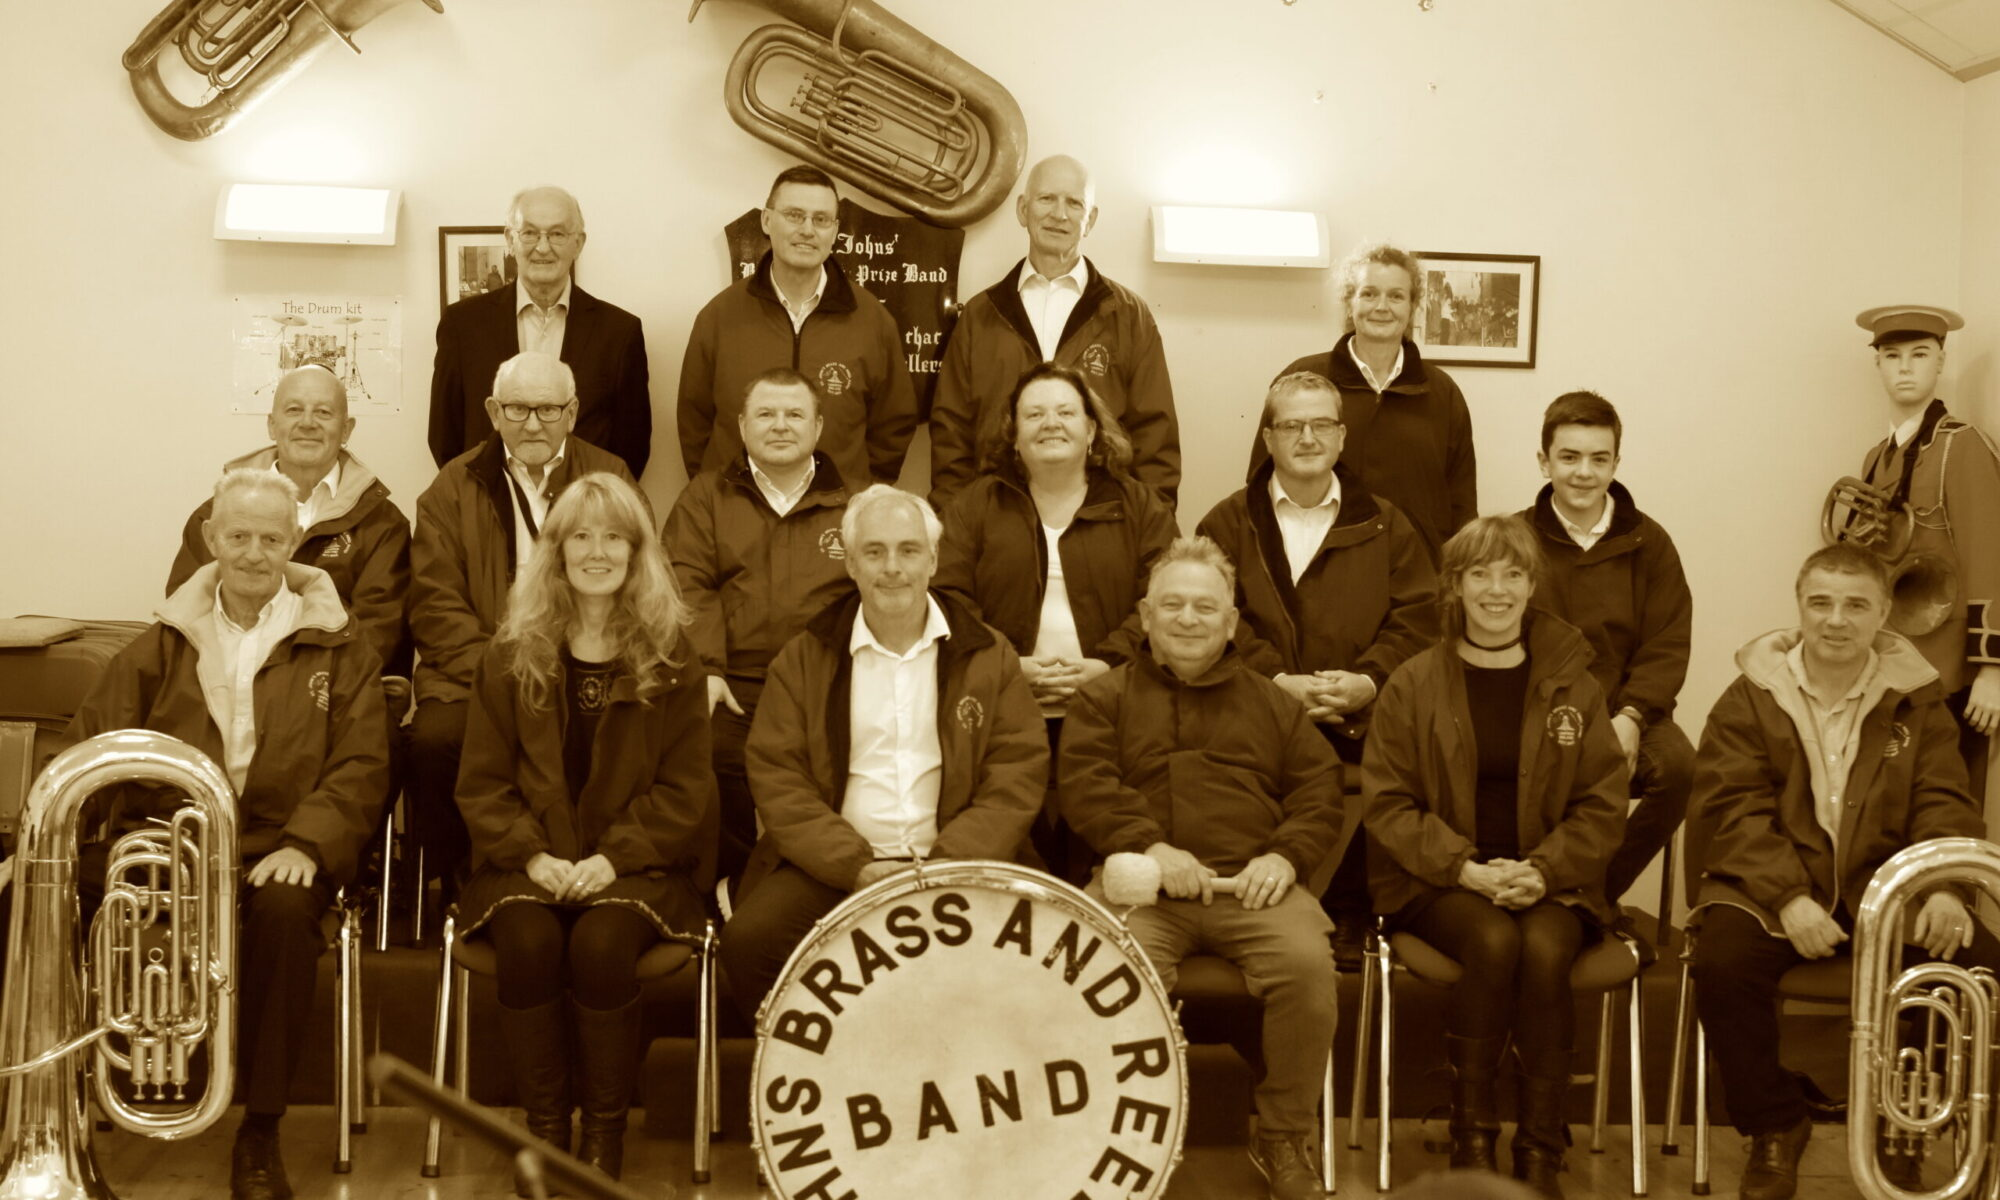 St. John's Brass and Reed Band